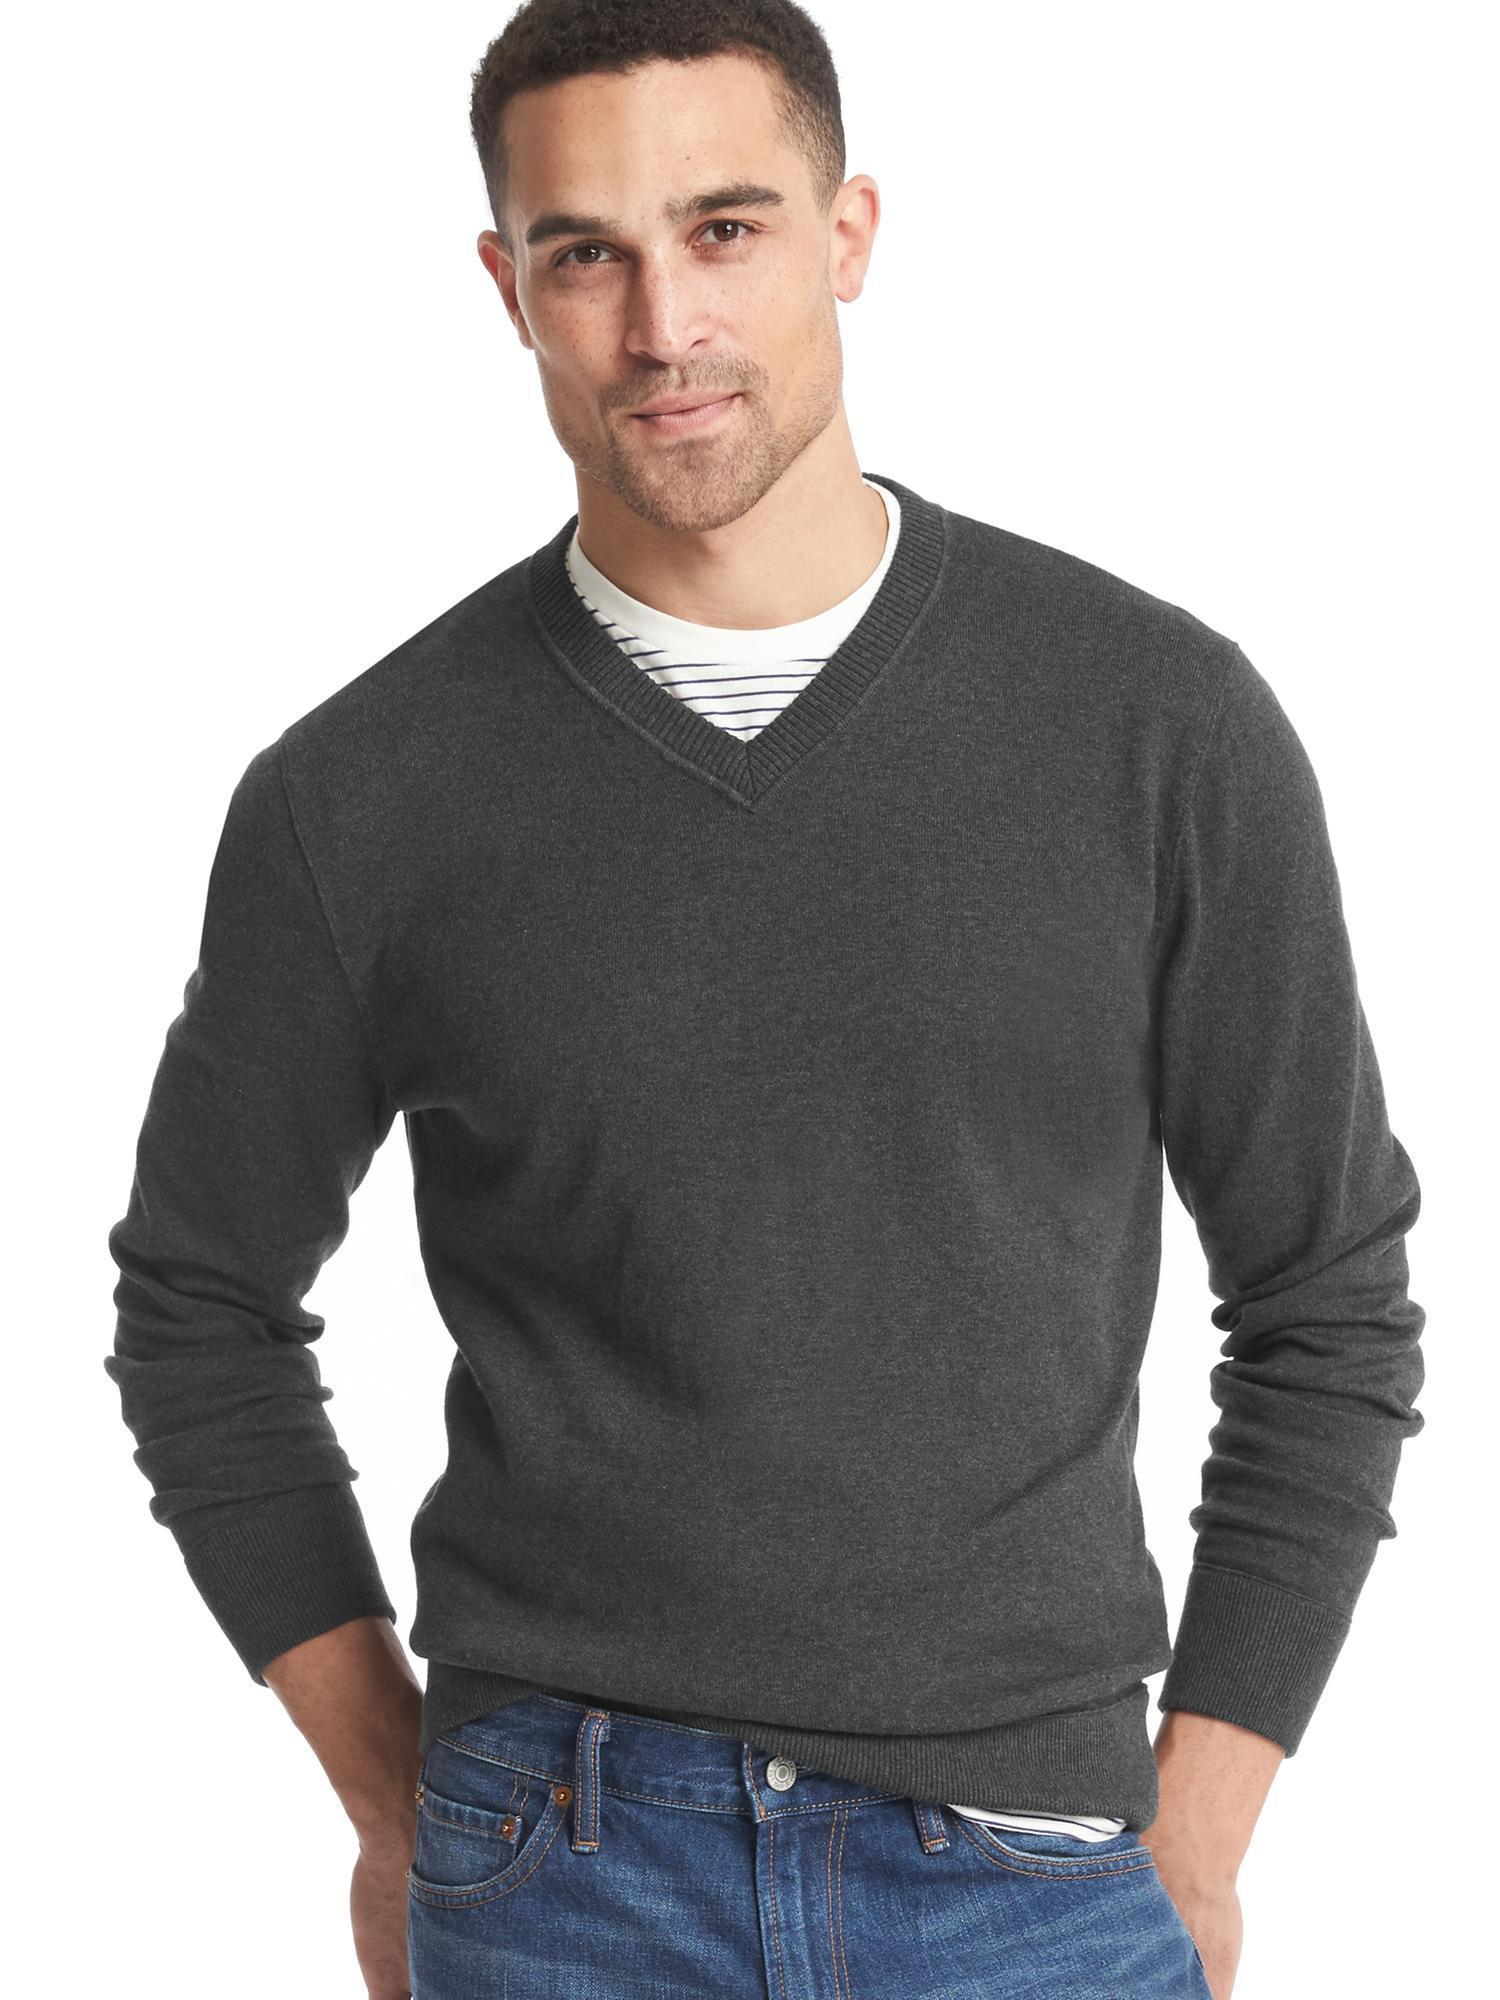 How to Wear a Charcoal V-neck Sweater (81 looks) | Men's Fashion